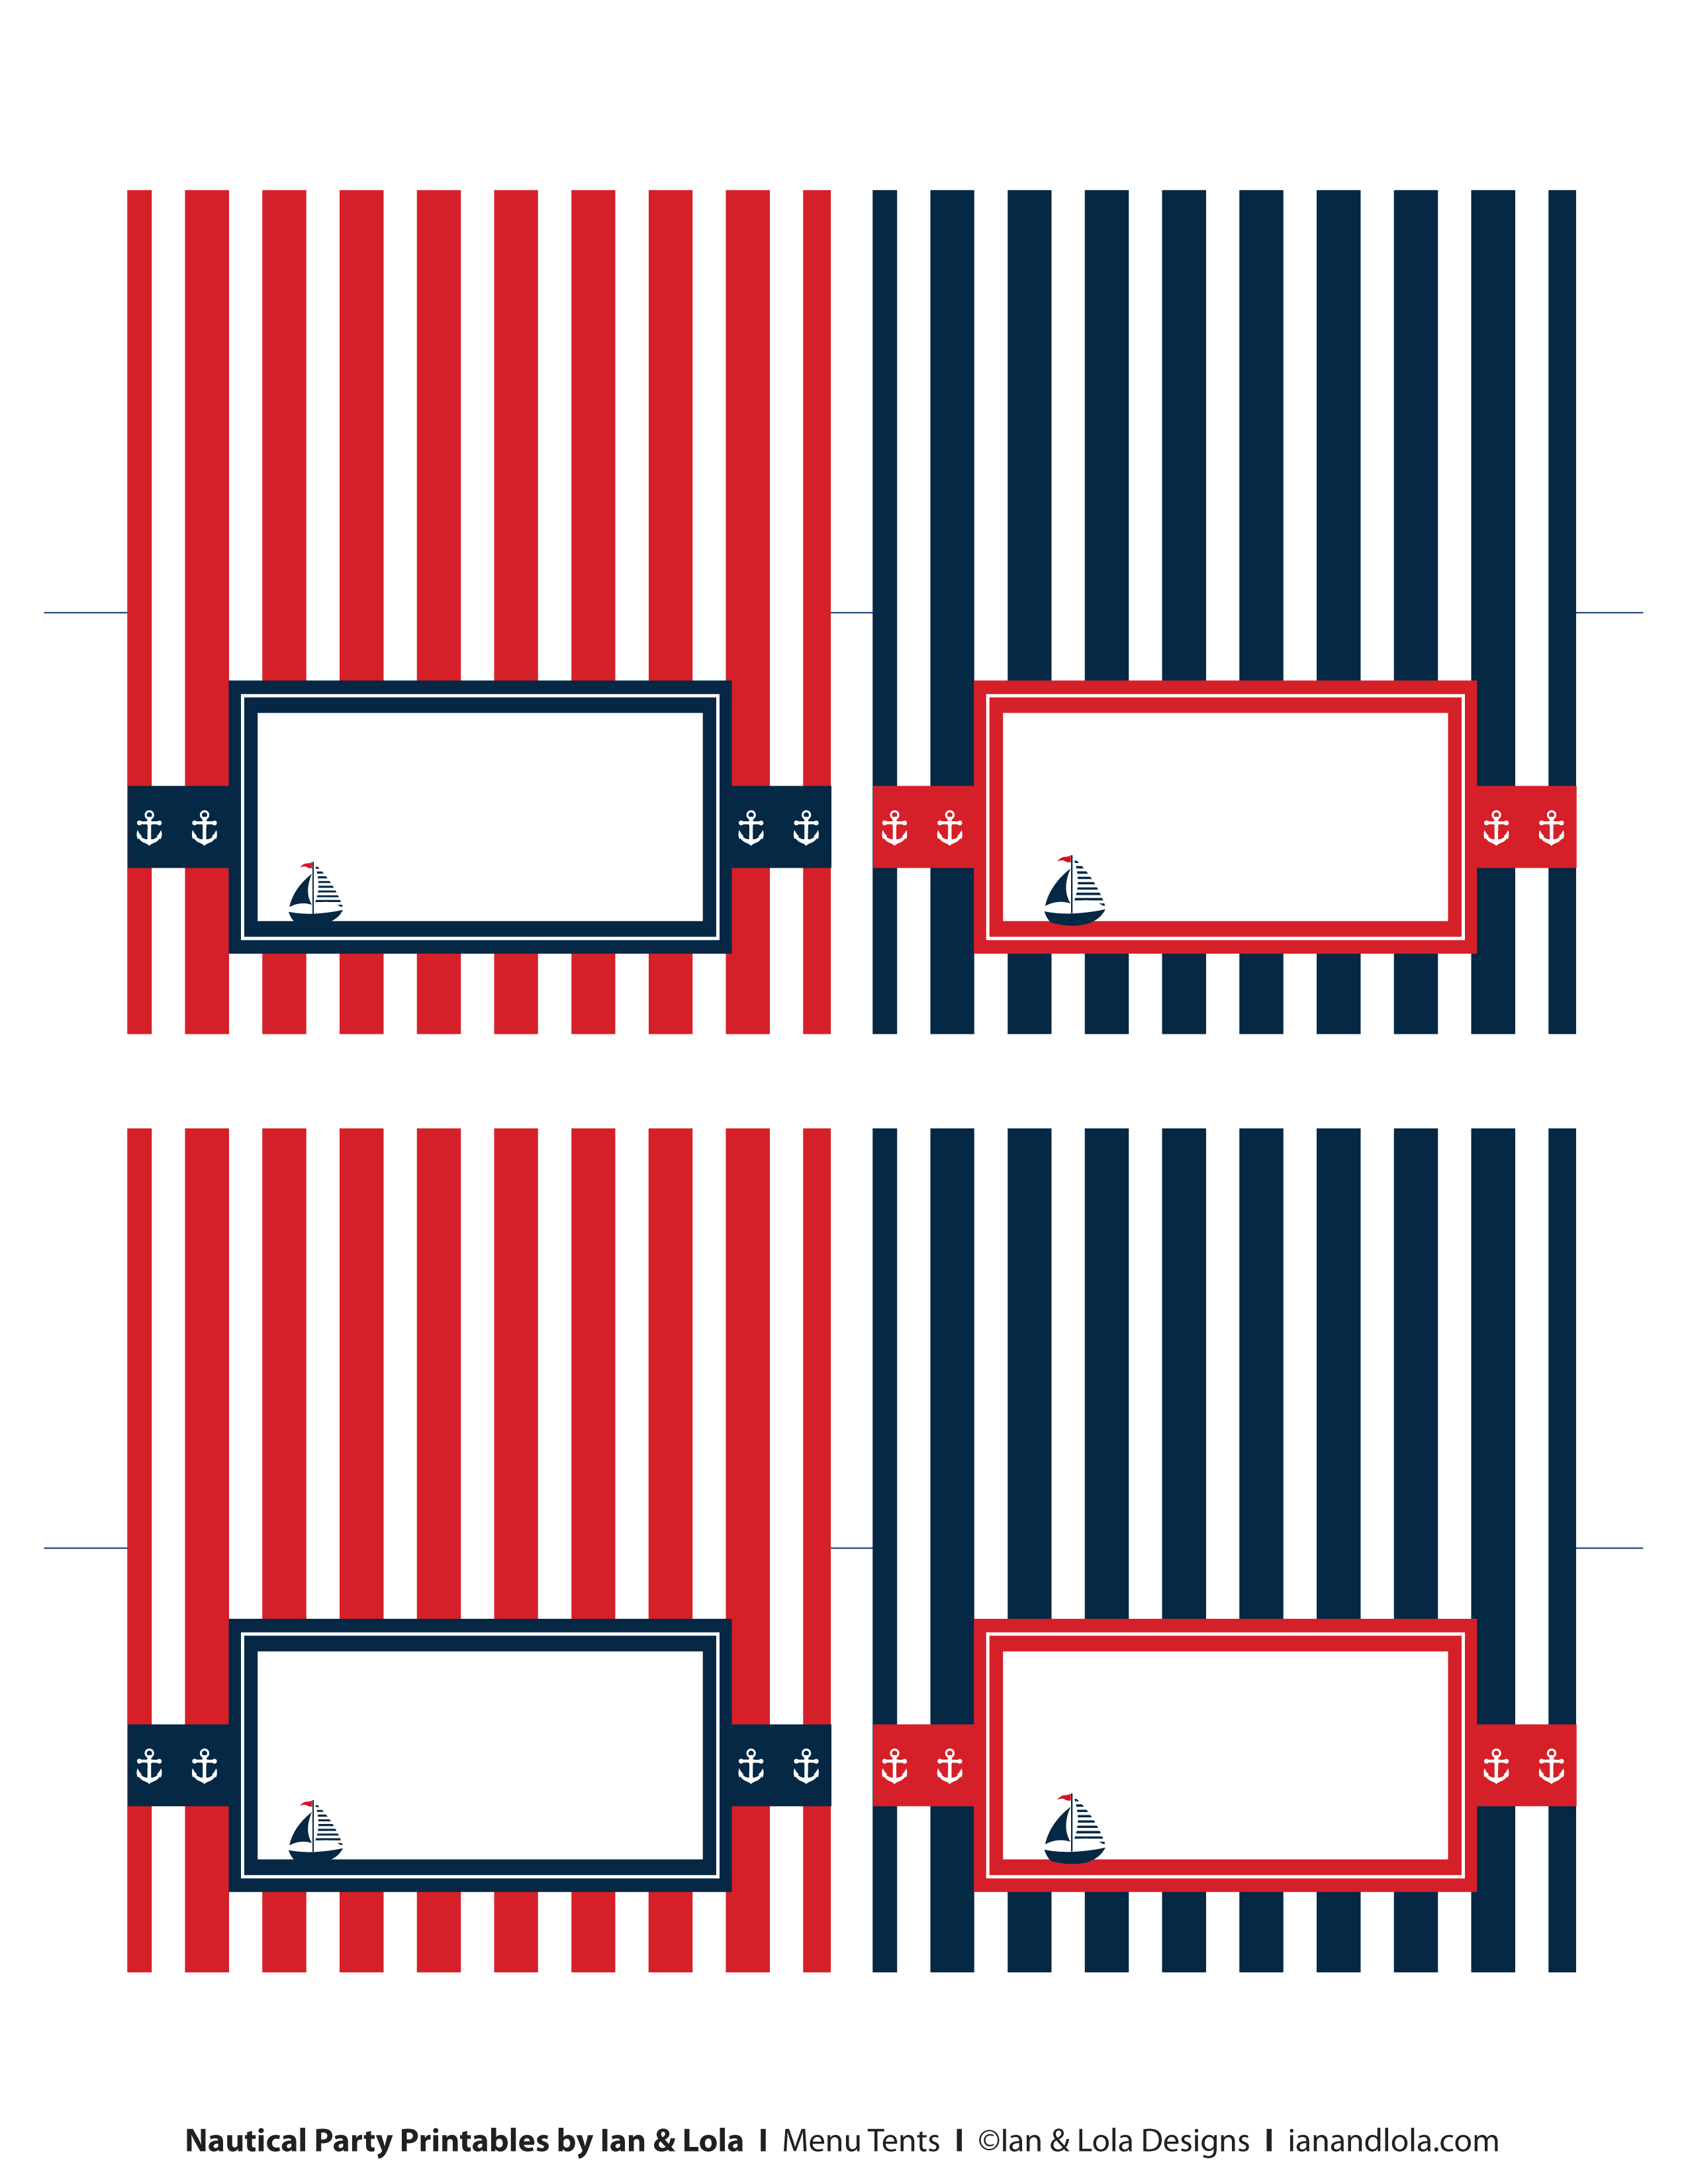 7 Images of Nautical Party Printables By Ian